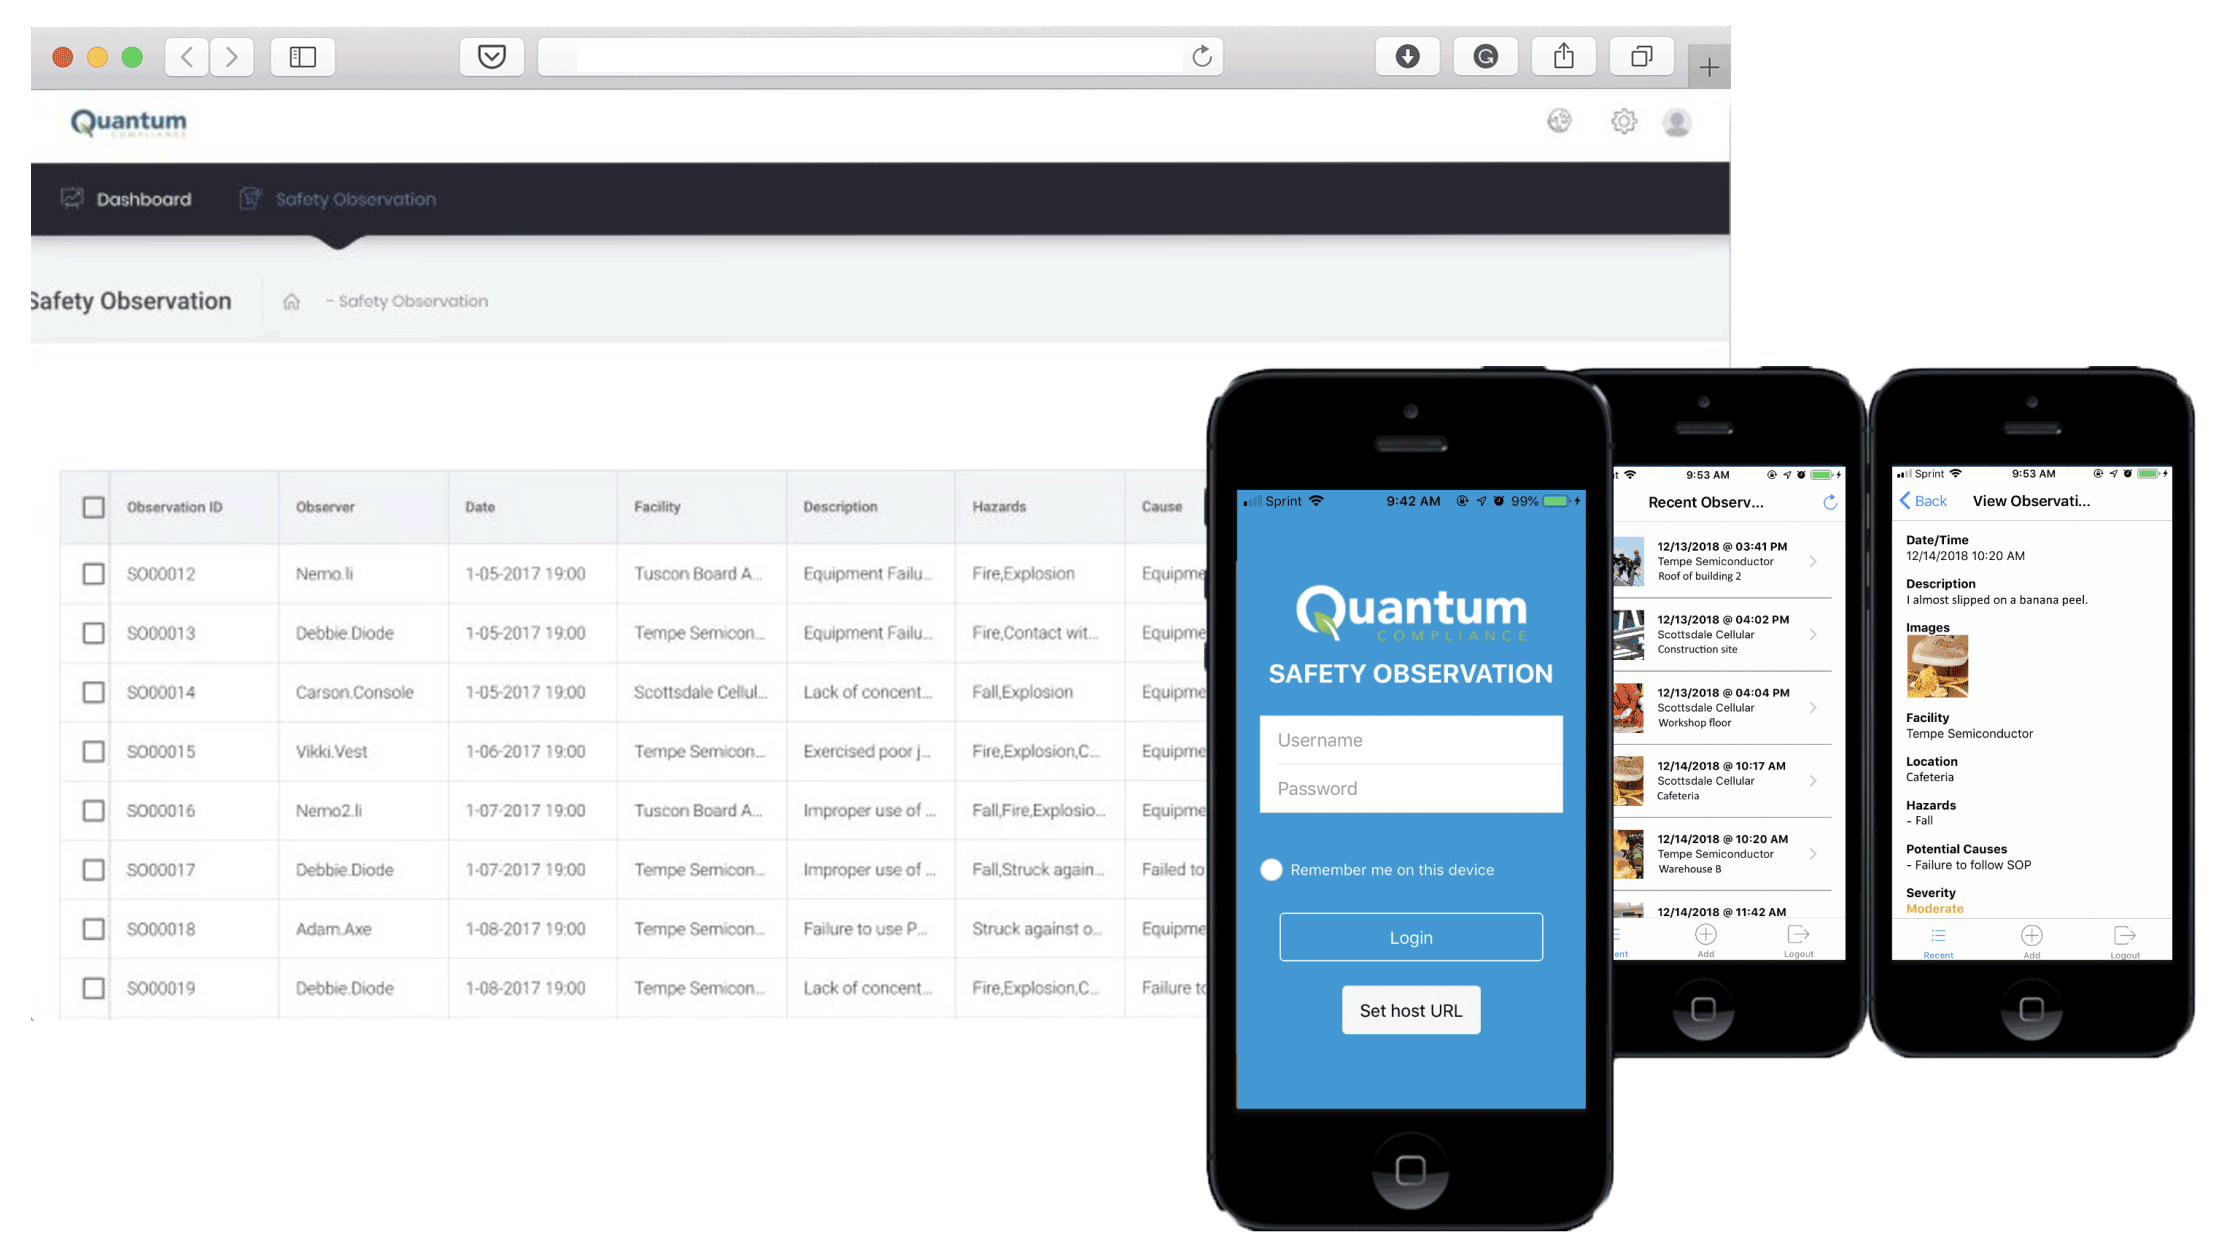 Quantum Compliance Launched Hazard Reporting within Their SaaS Platform